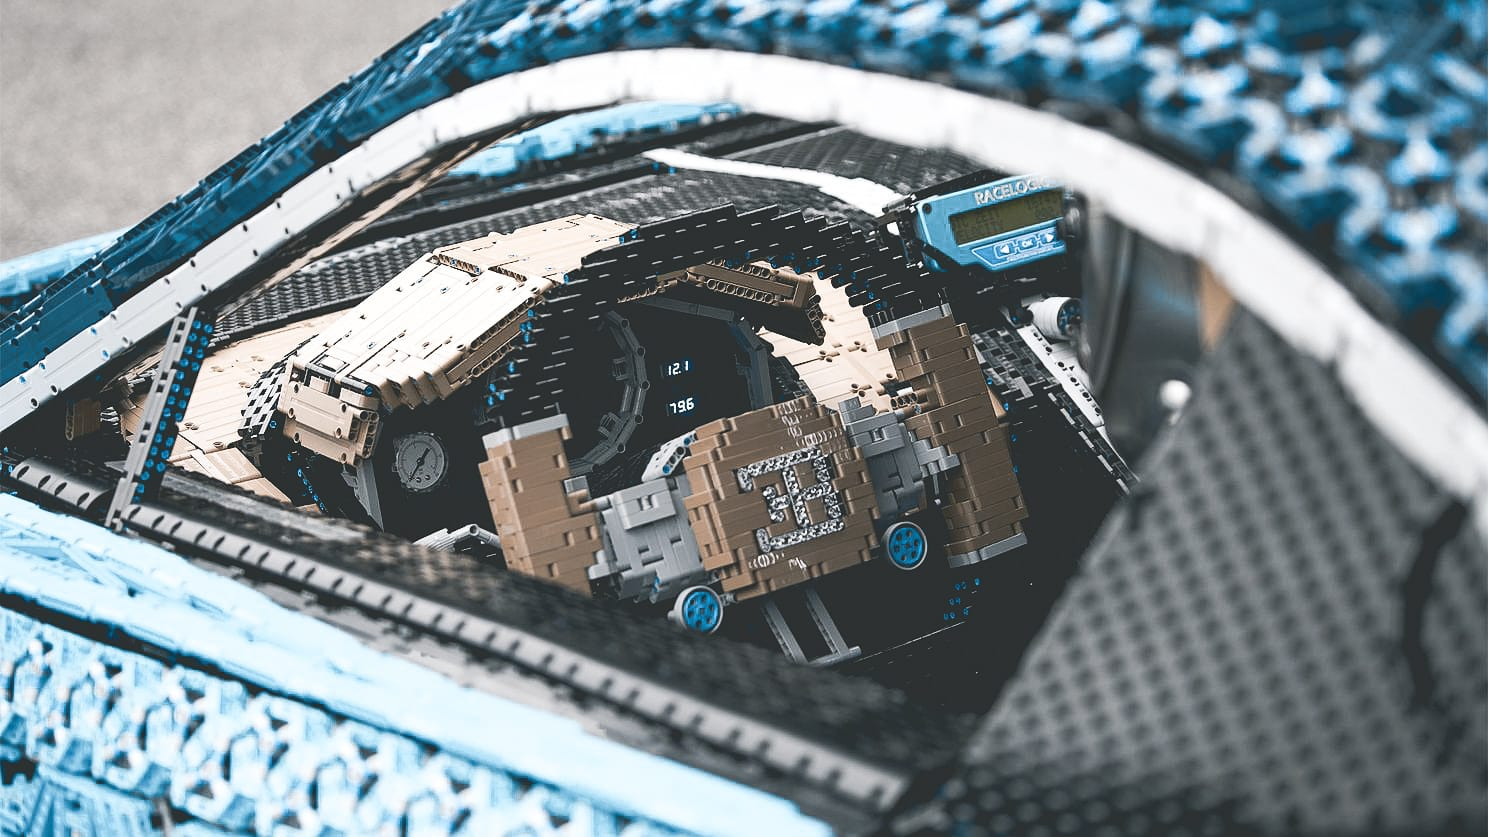 https://www.lego.com/nl-nl/themes/technic/bugatti-chiron/build-for-real?icmp=COXXXXHomeMSXTechnicProduct42083BuildForReal